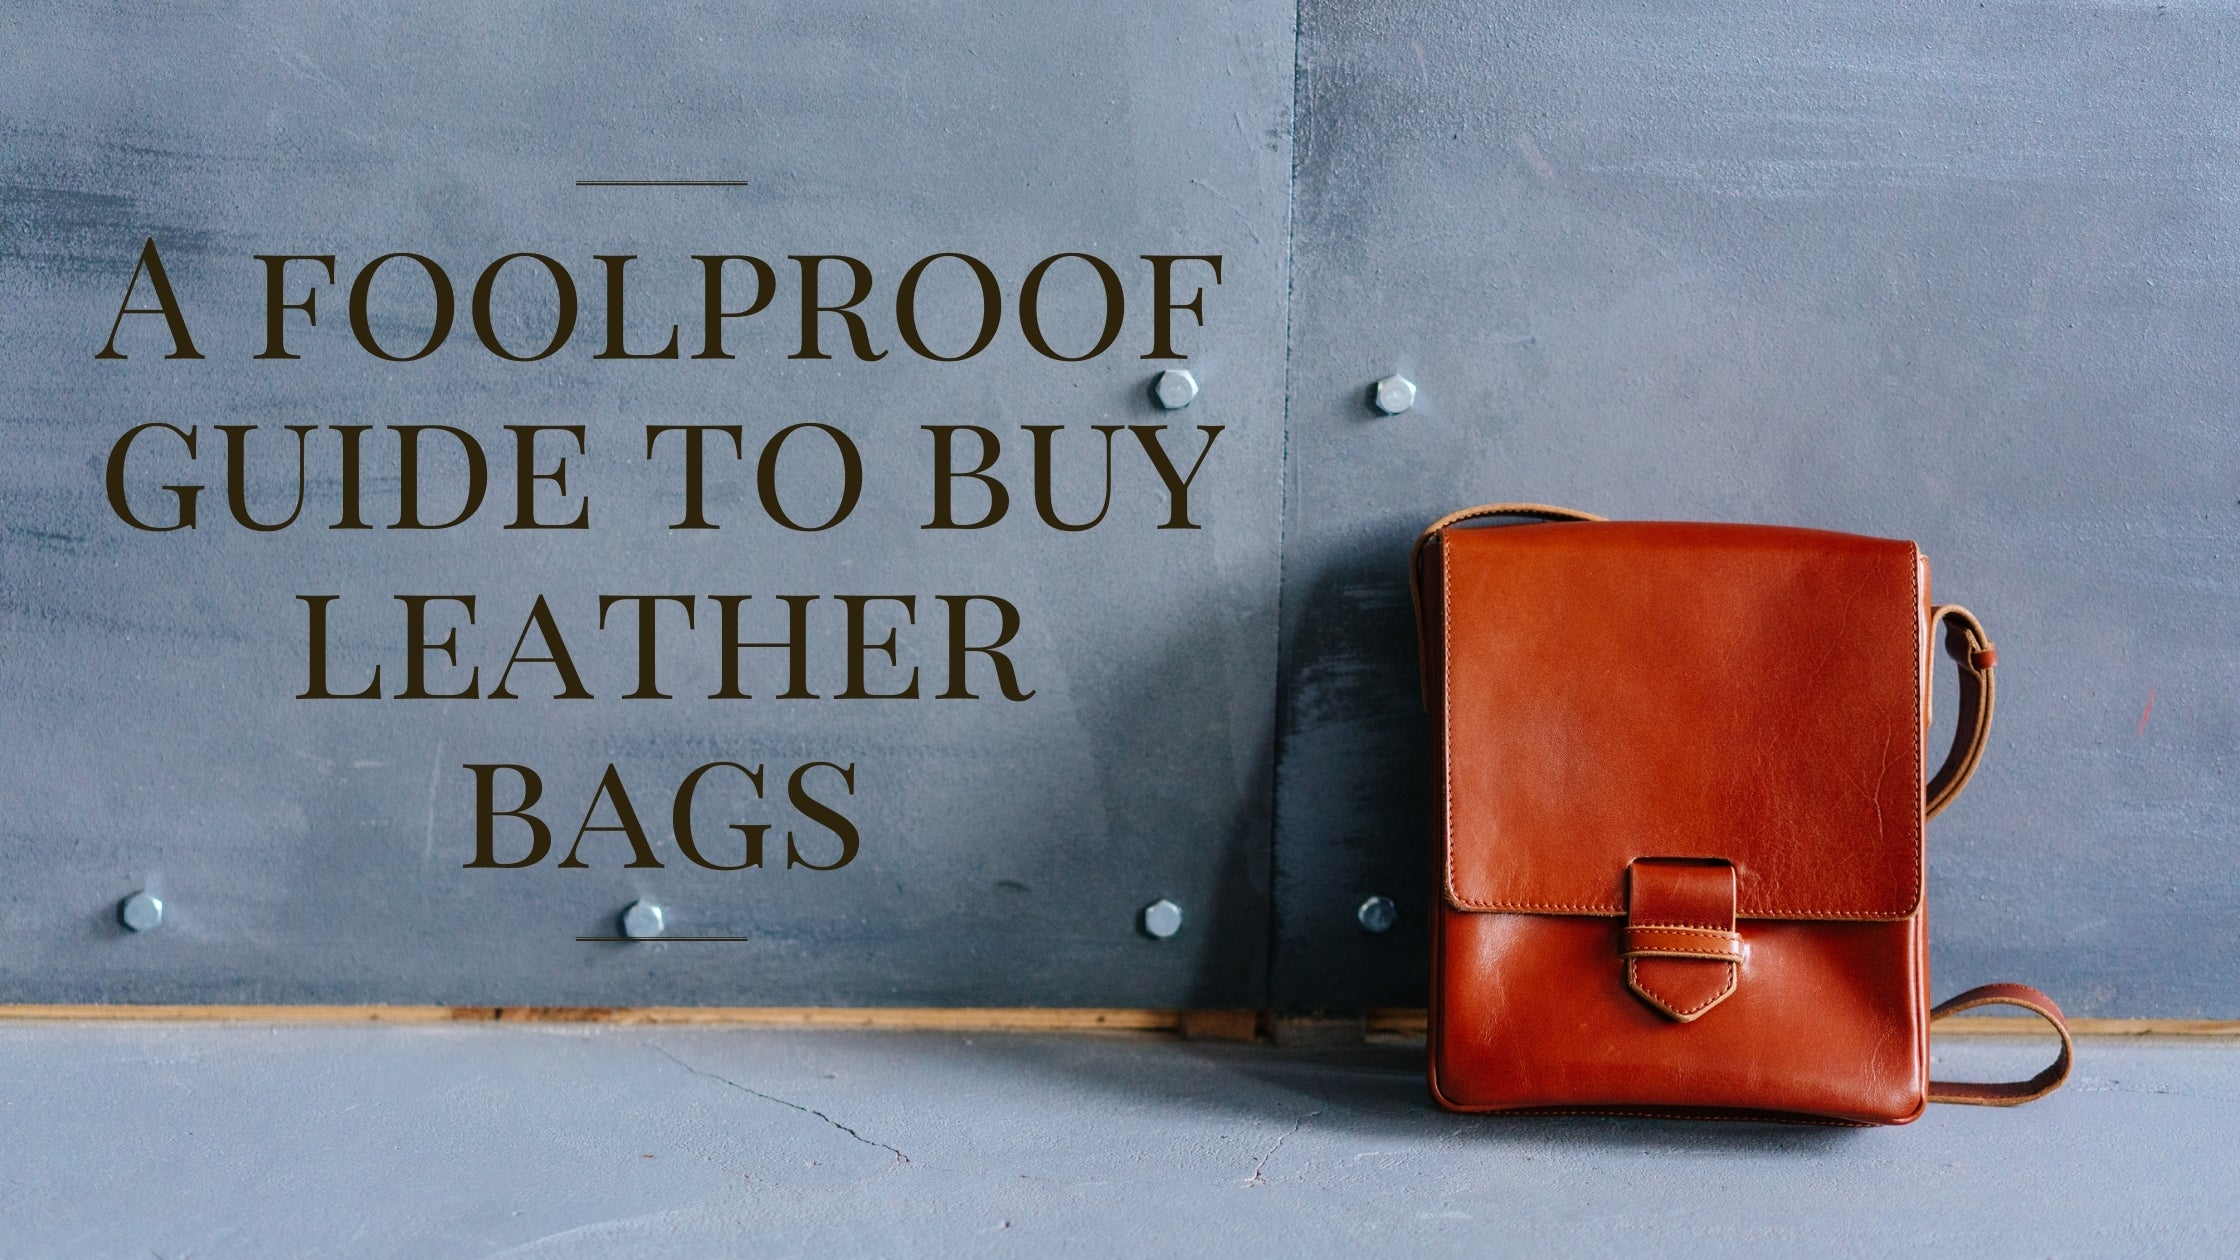 Leather buying guide, how to buy leather bags, leather messenger bags for men and women